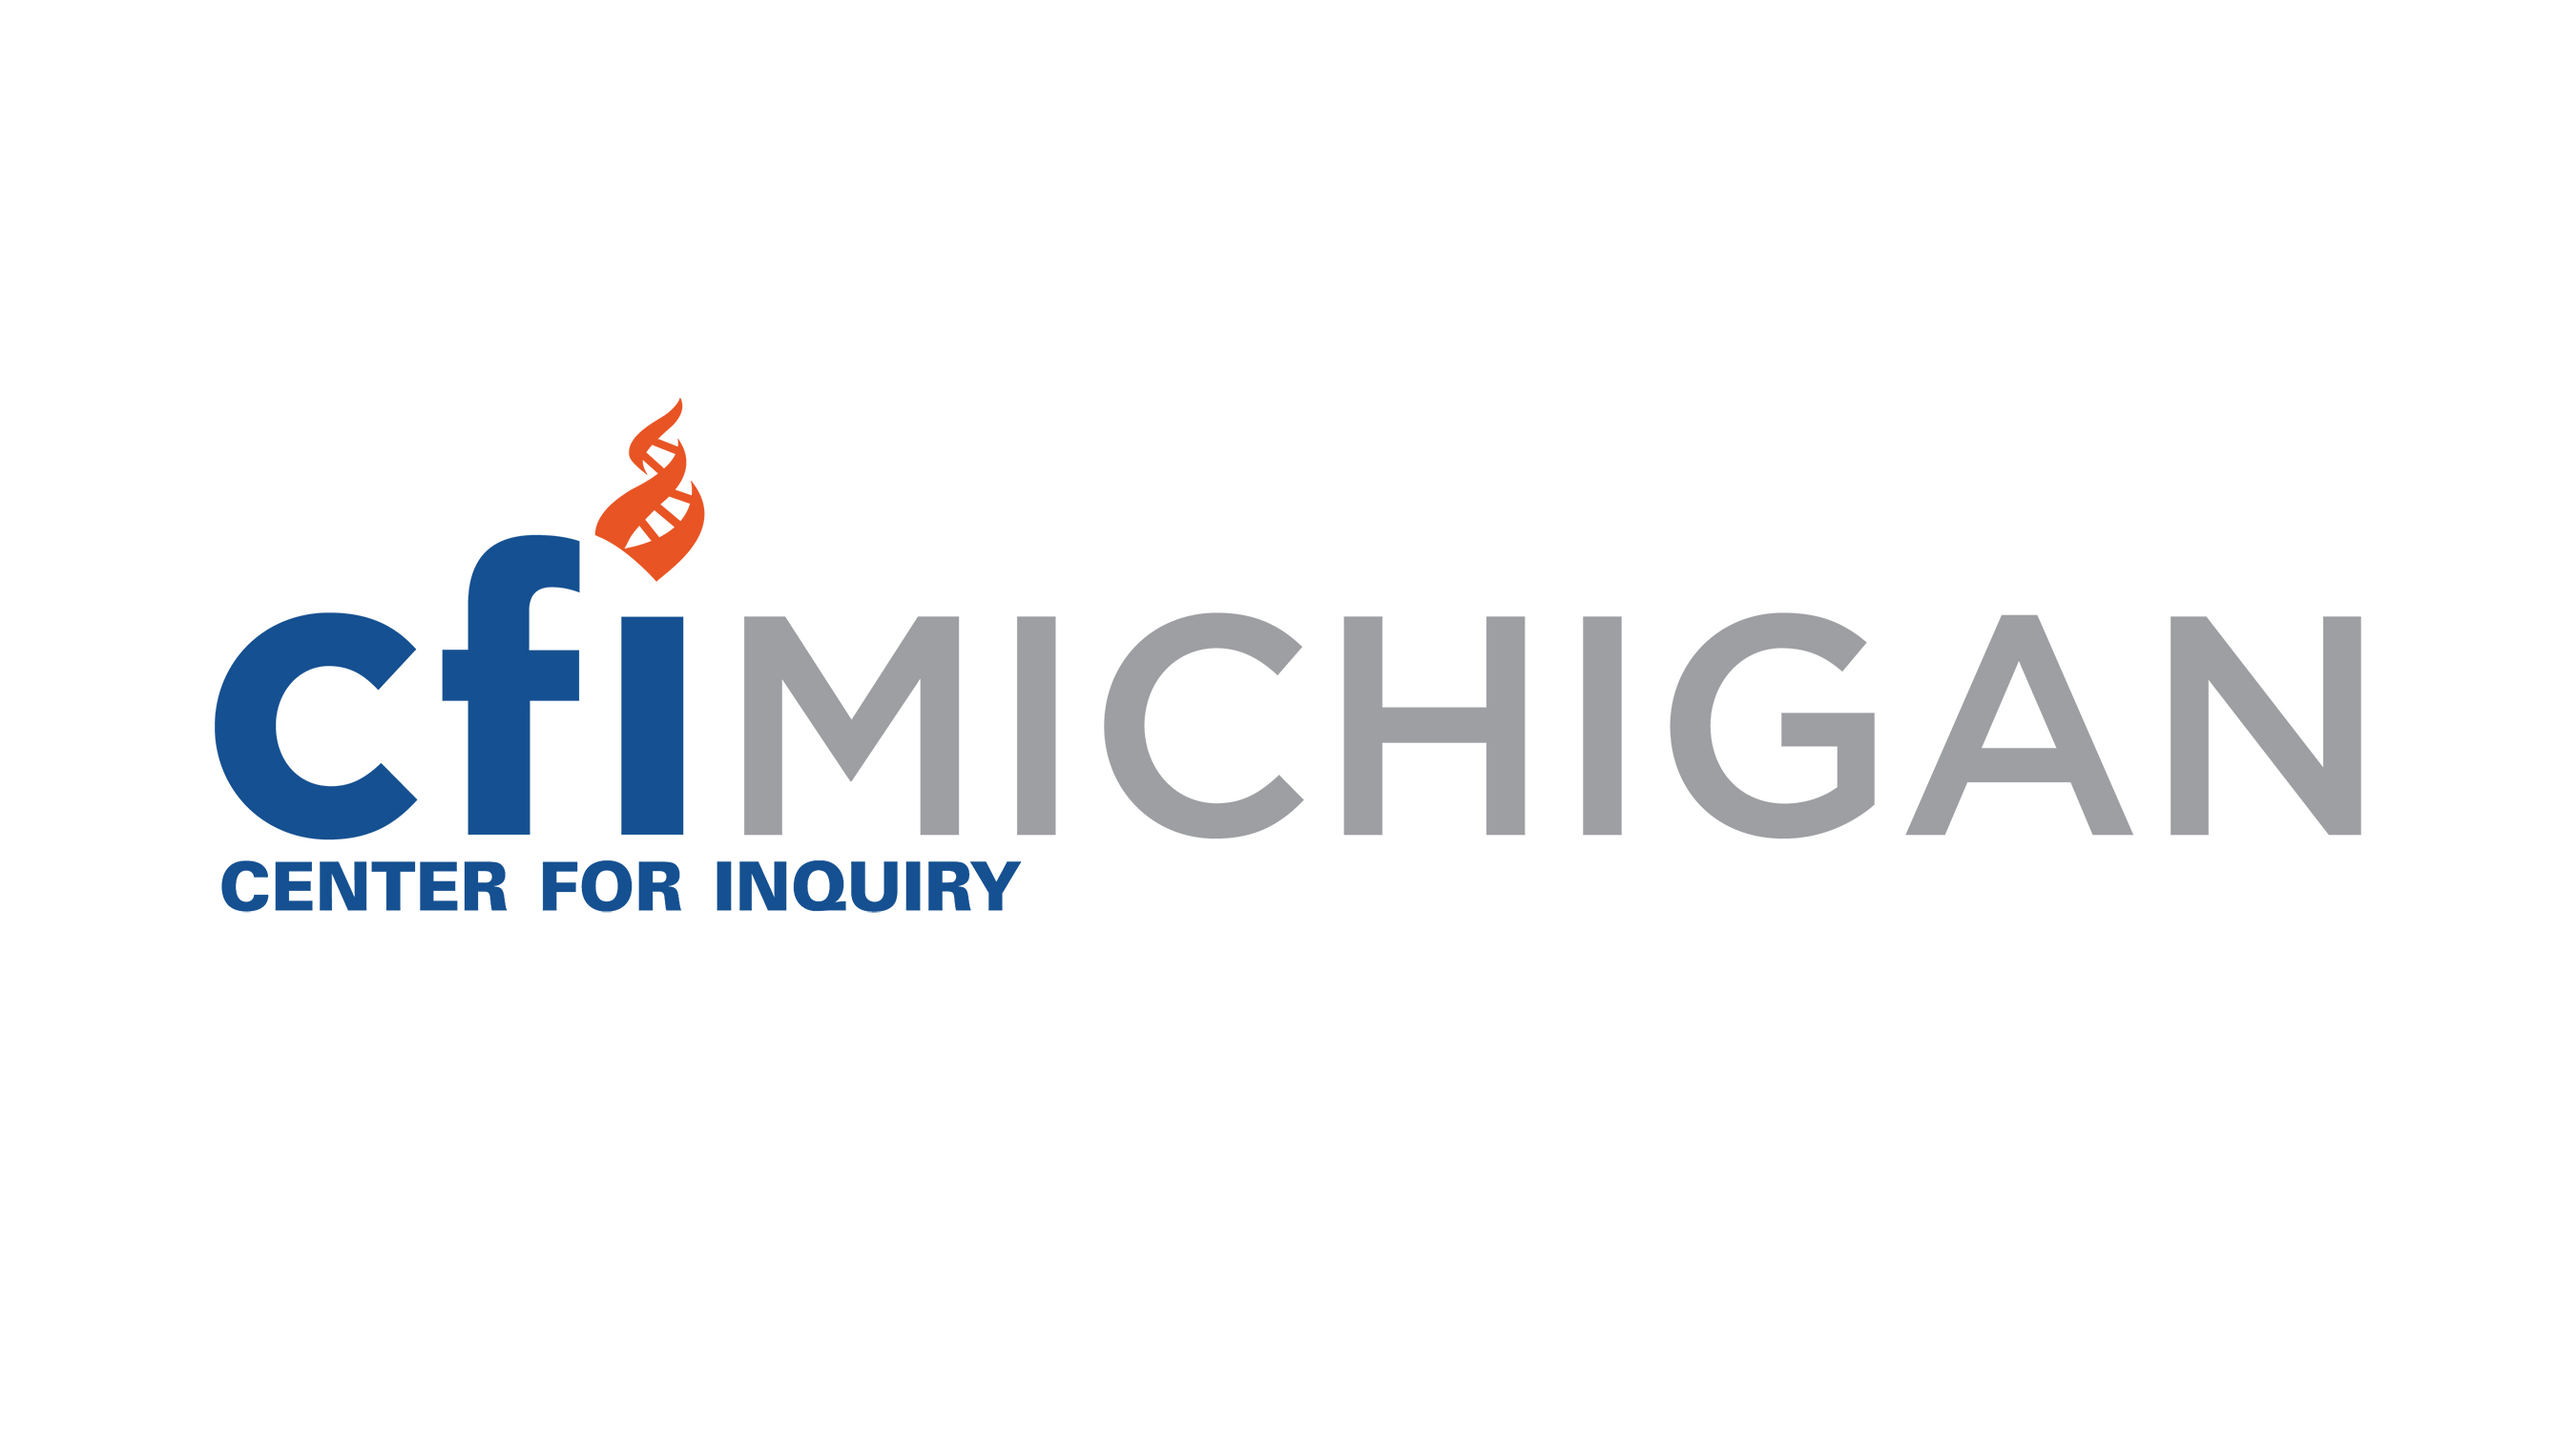 Speakers | CFI Michigan